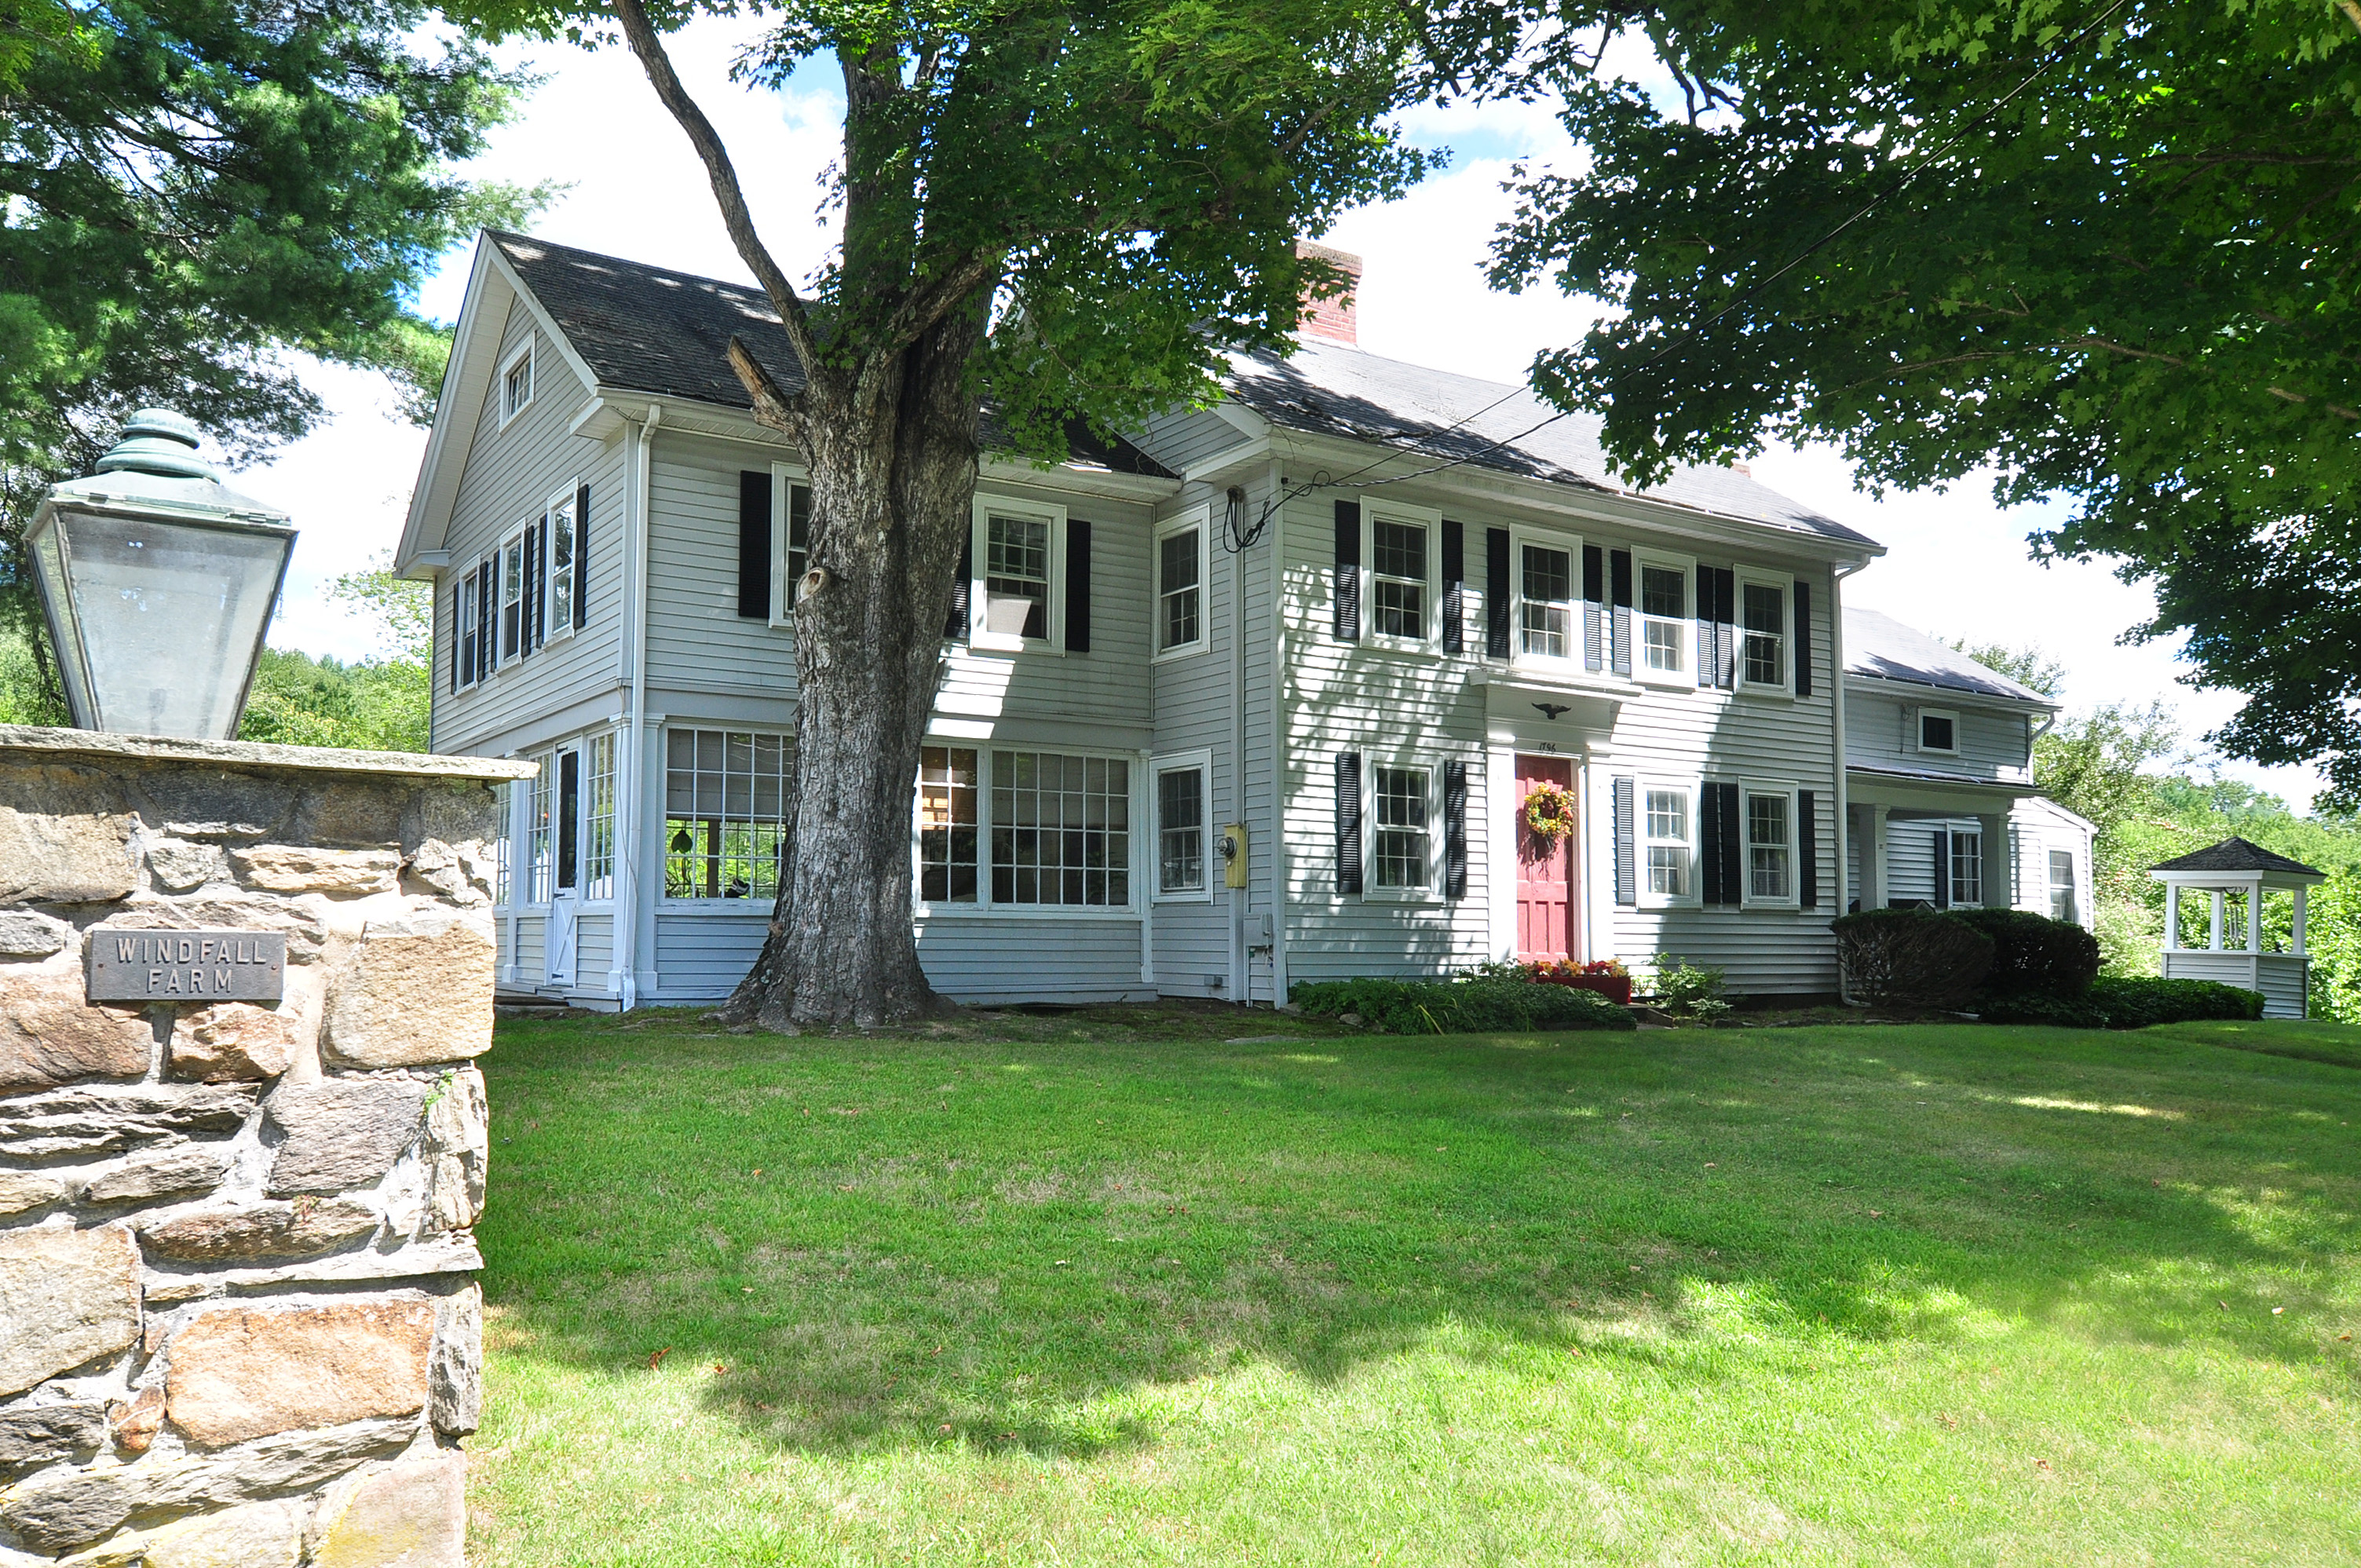 Single Family Home for Sale at Windfall Farm 392 Old Turnpike Road East Bridgewater, Connecticut, 06752 United States